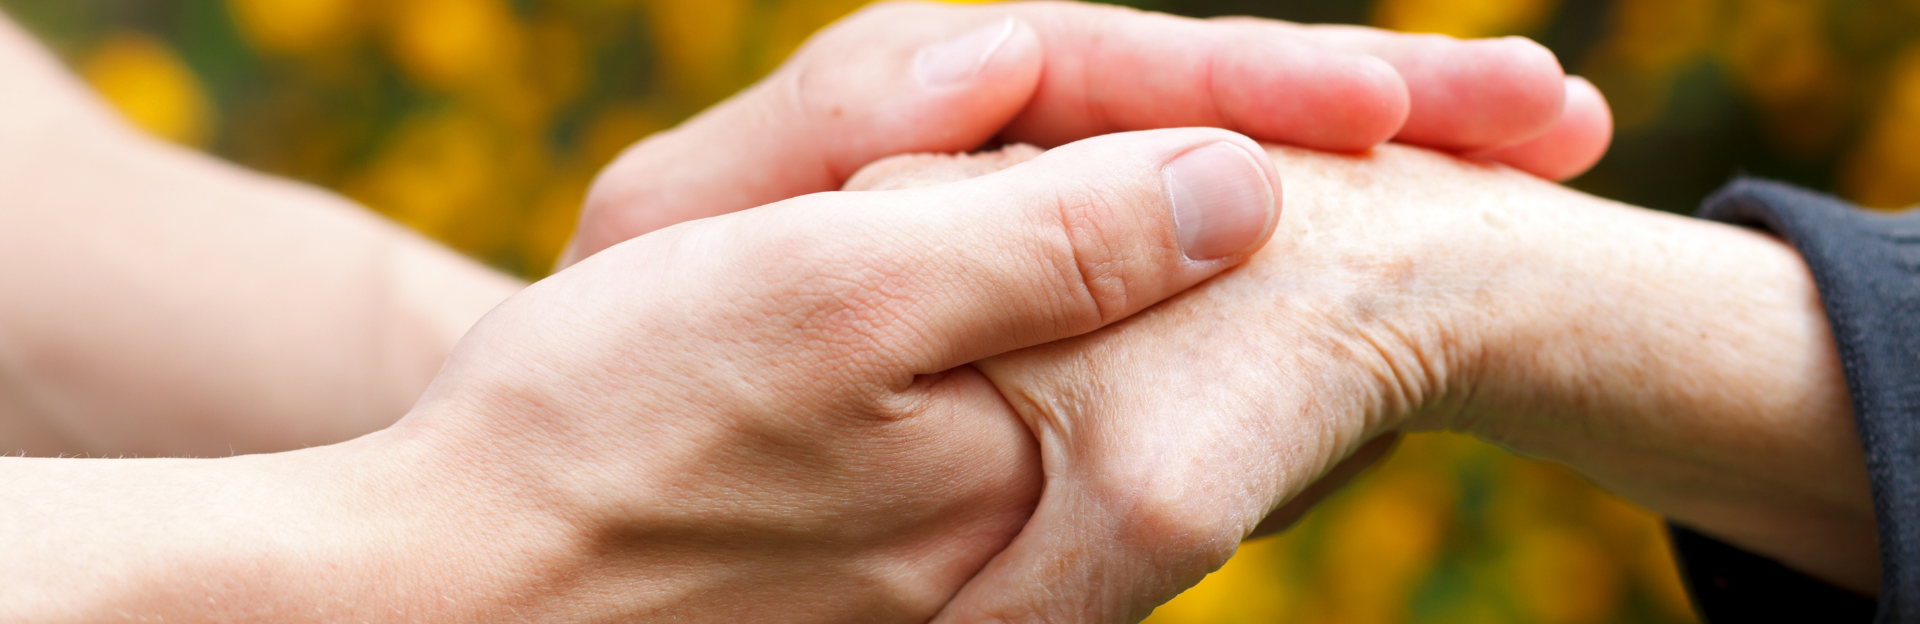 How to help someone with a mental disorder or illness